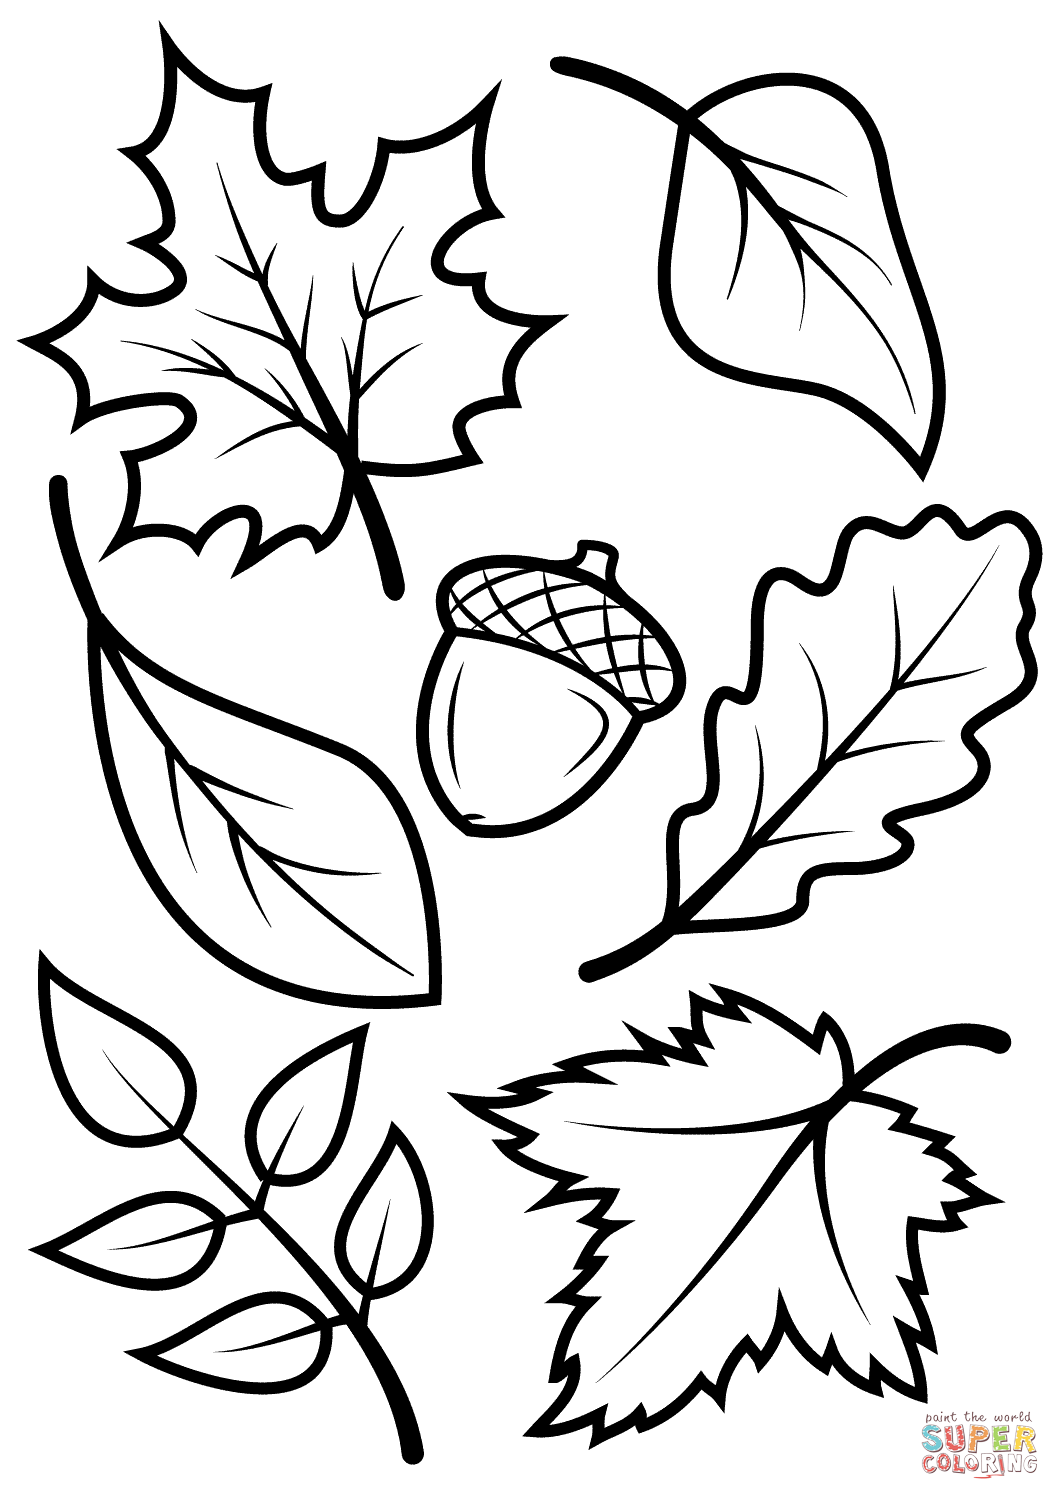 Fall Leaves And Acorn Coloring Page From Fall Category Select From Printable Crafts Of